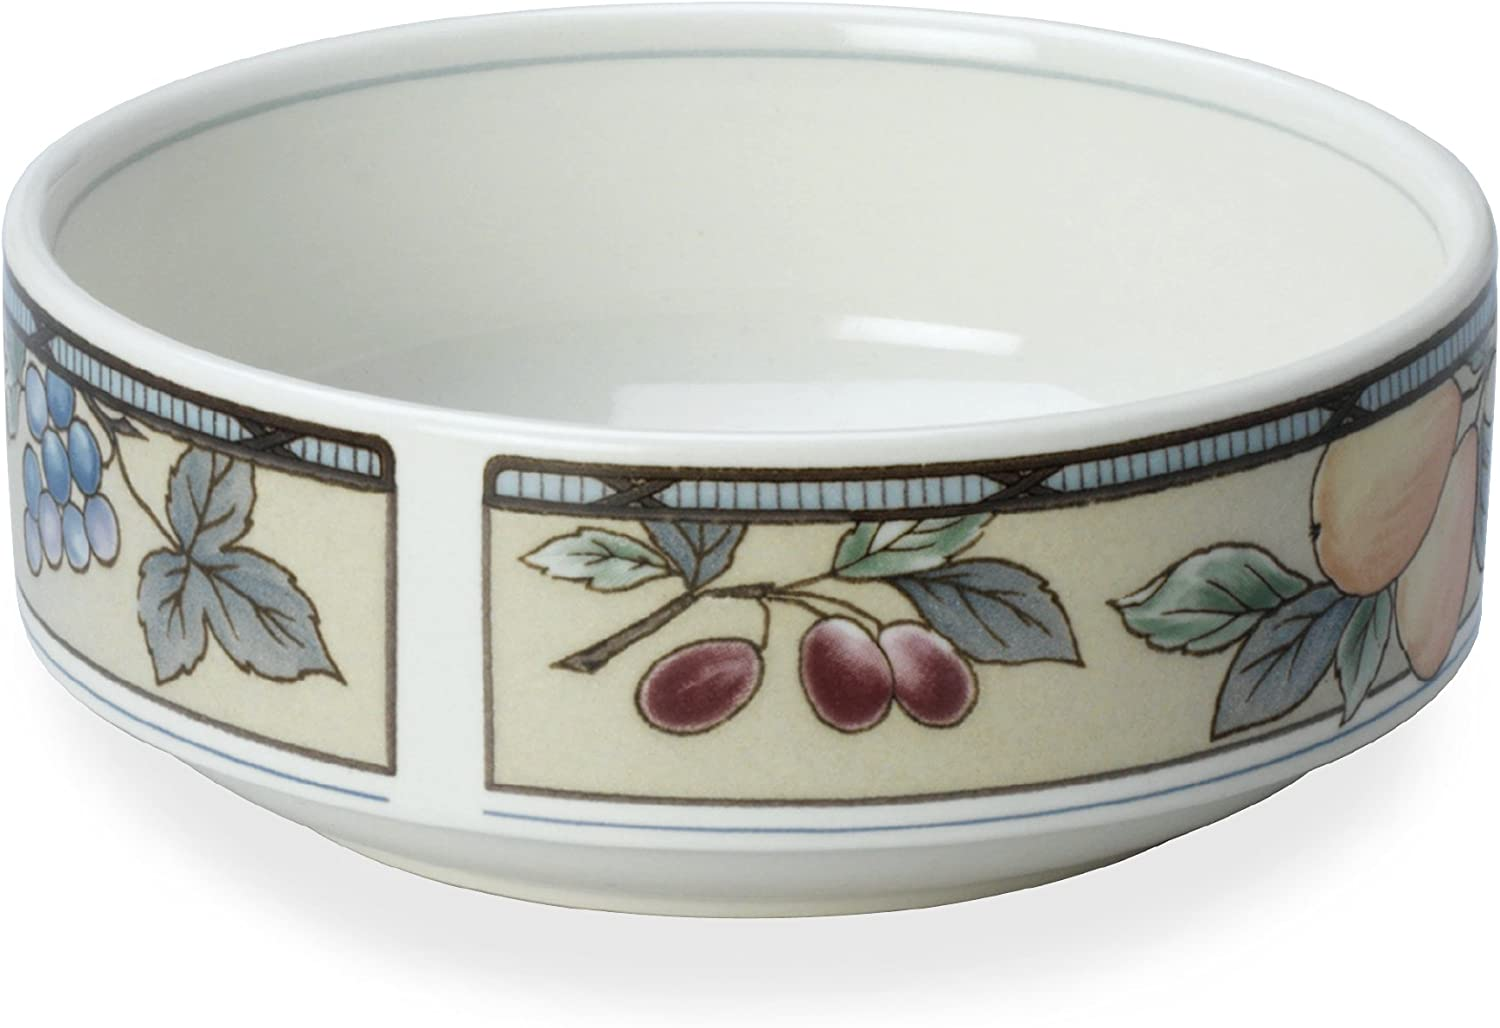 Mikasa Garden Harvest Fruit Bowl, Assorted , 5-Inch - CAC29-210